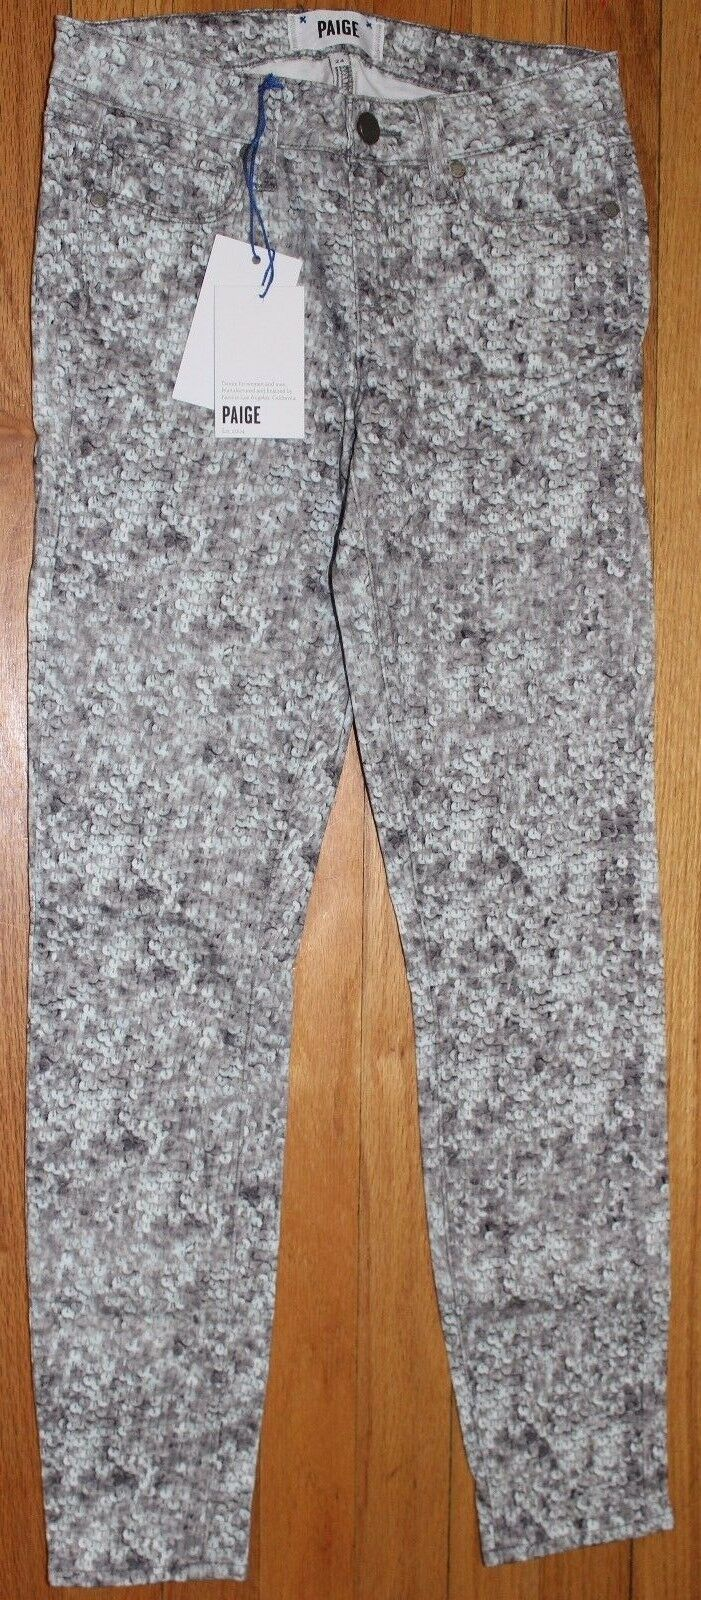 168 PAIGE PEWTER SEQUINS VERDUGO SKINNY  ANKLE JEANS SZ 24